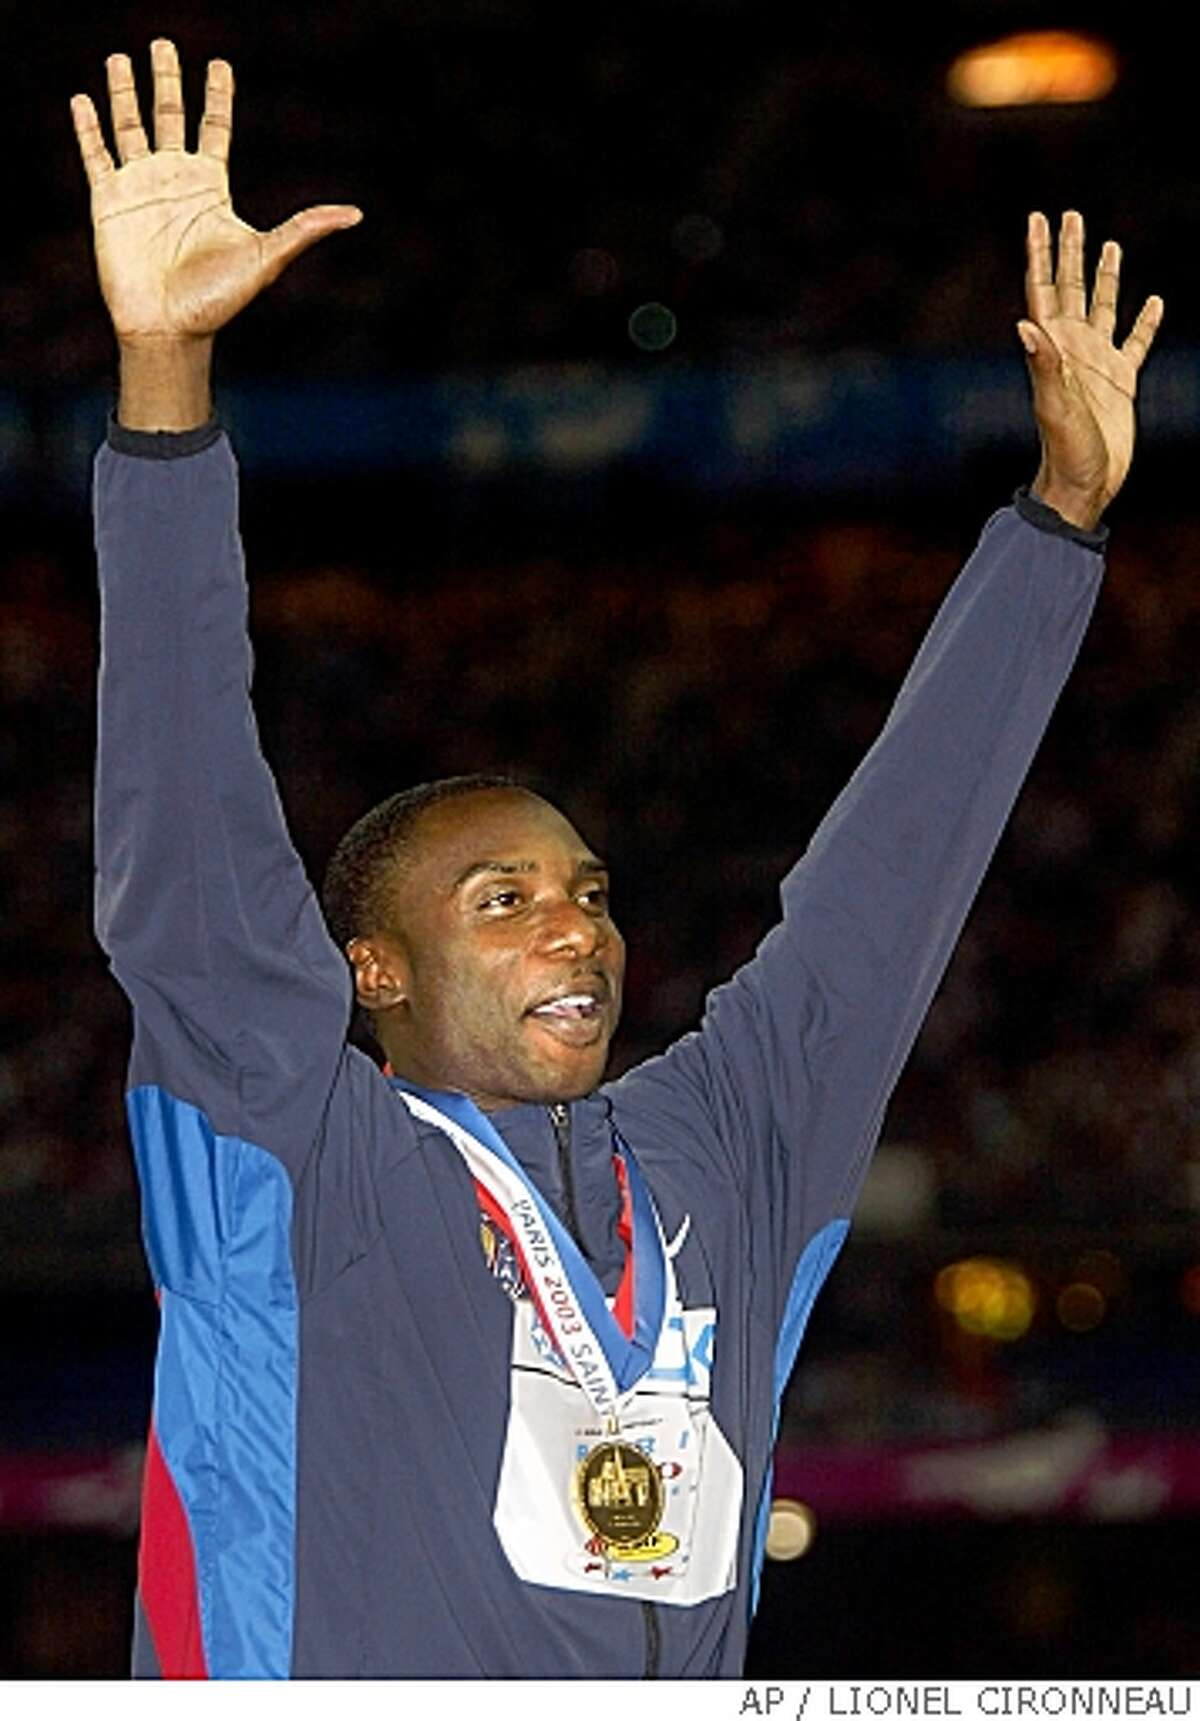 Jerome Young of the USA celebrates the gold medal he won in the men's 400-meter at the World Athletics Championships, at the Stade de France in Saint Denis, north of Paris, Wednesday, Aug. 27, 2003. Sprinter Young, a central figure in a doping case that could cost the U.S. relay team its gold medal from Sydney, was banned for life by the U.S. Anti-Doping Agency on Wednesday, Nov. 10, 2004, following his second positive test for a banned drug. (AP Photo/Lionel Cironneau,file)